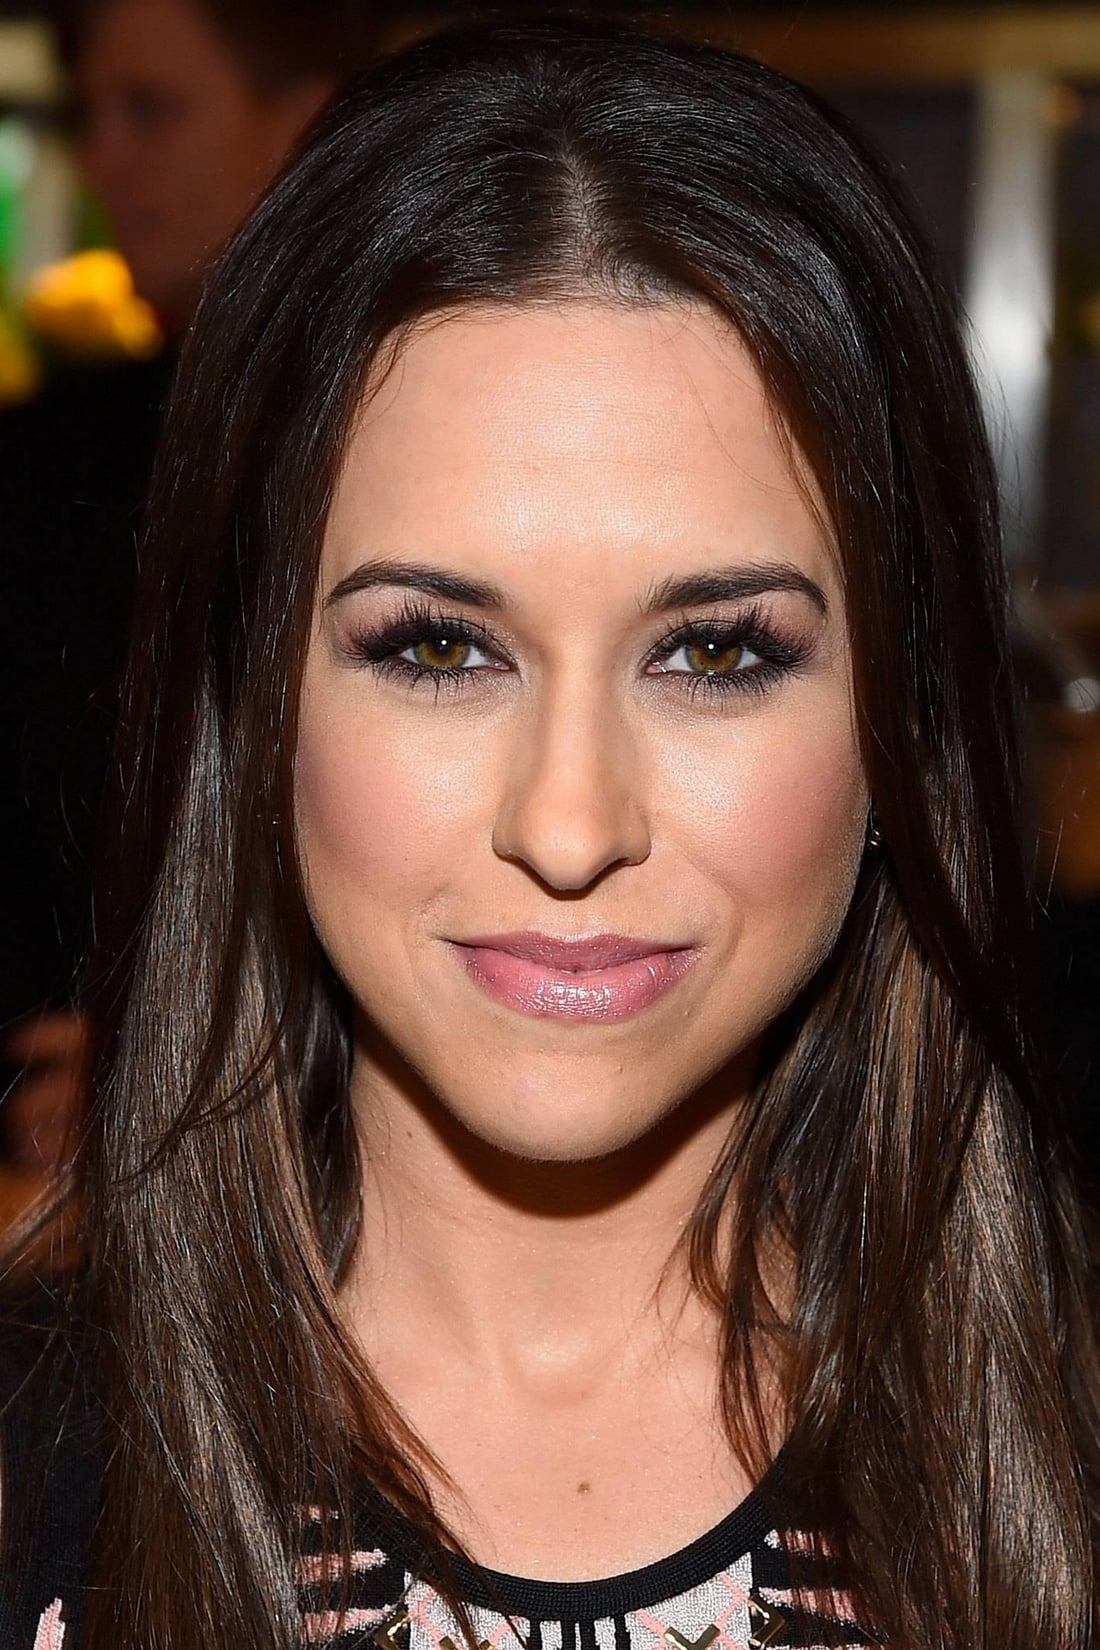 Posters with Lacey Chabert